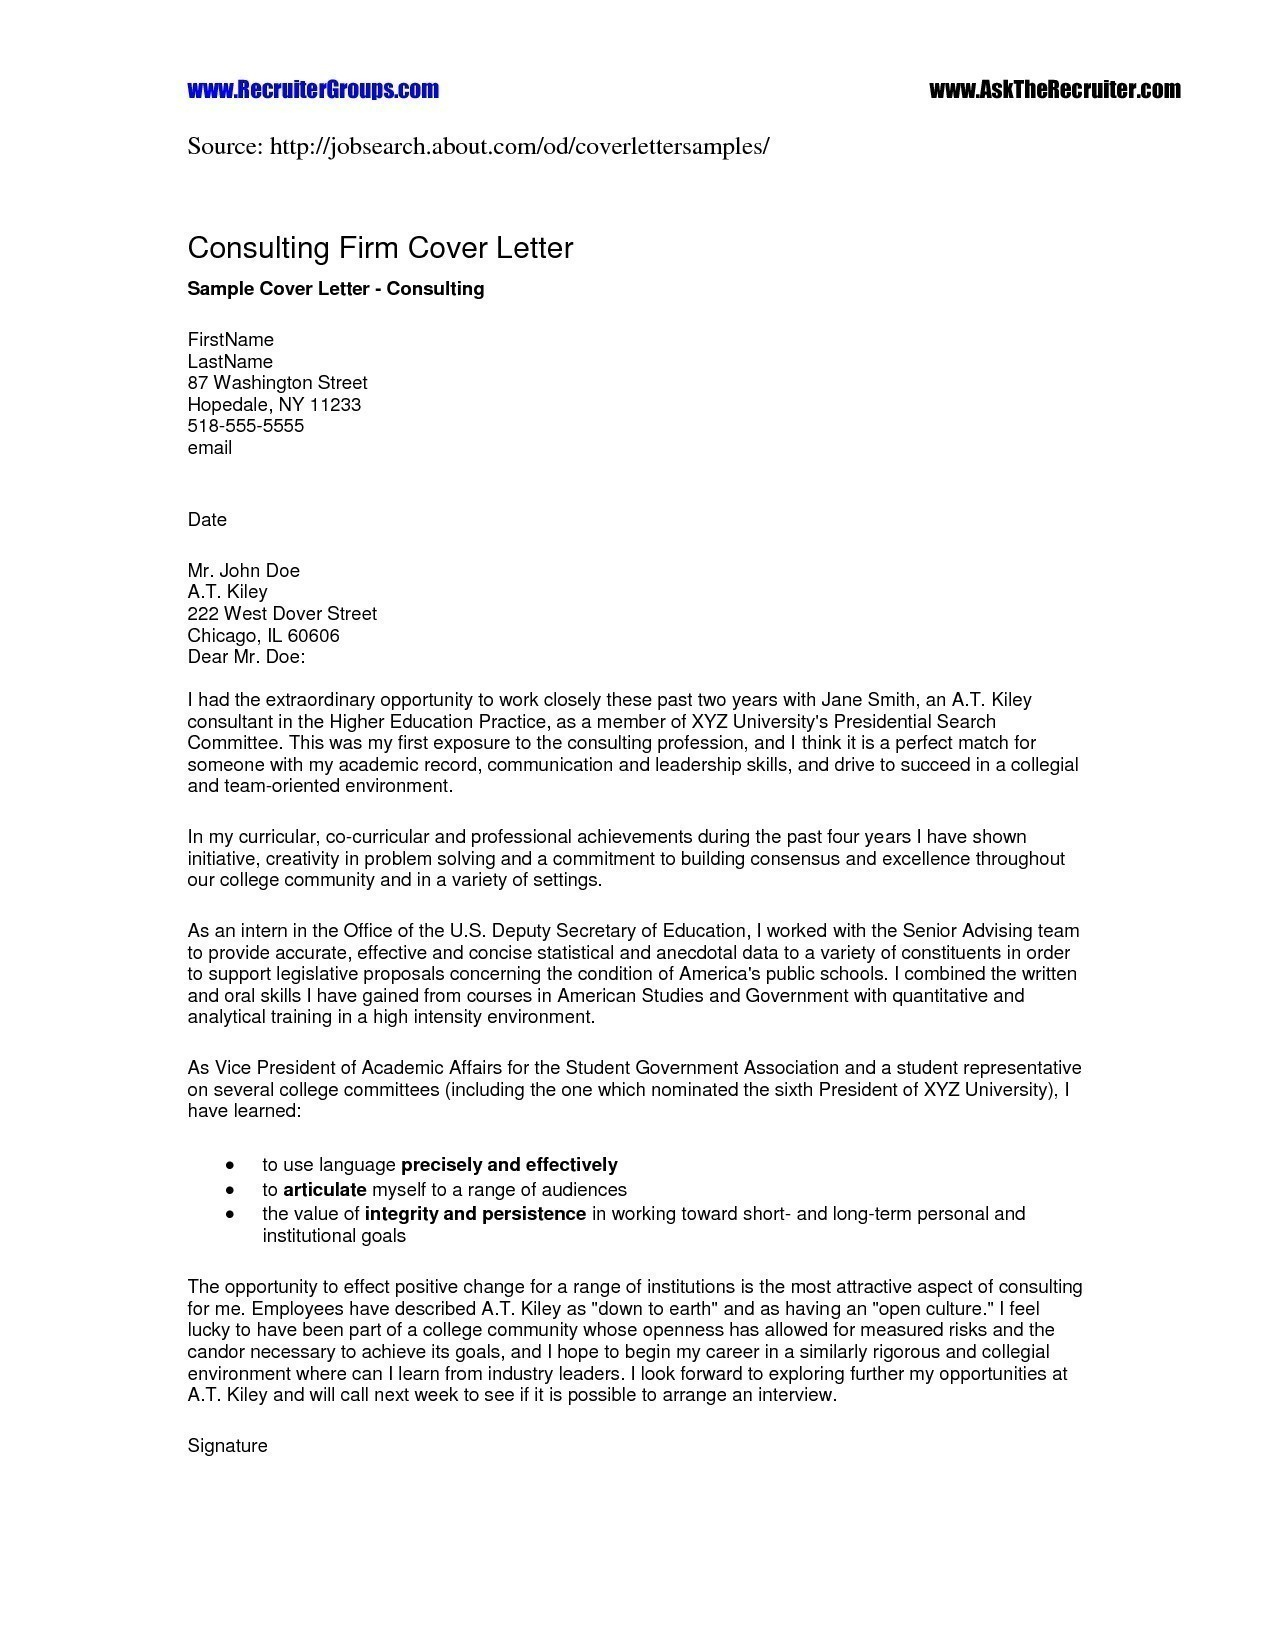 Formal Offer Letter Template - How to Write Job Fer Letter Fresh Job Fer Letter Sample Best Job